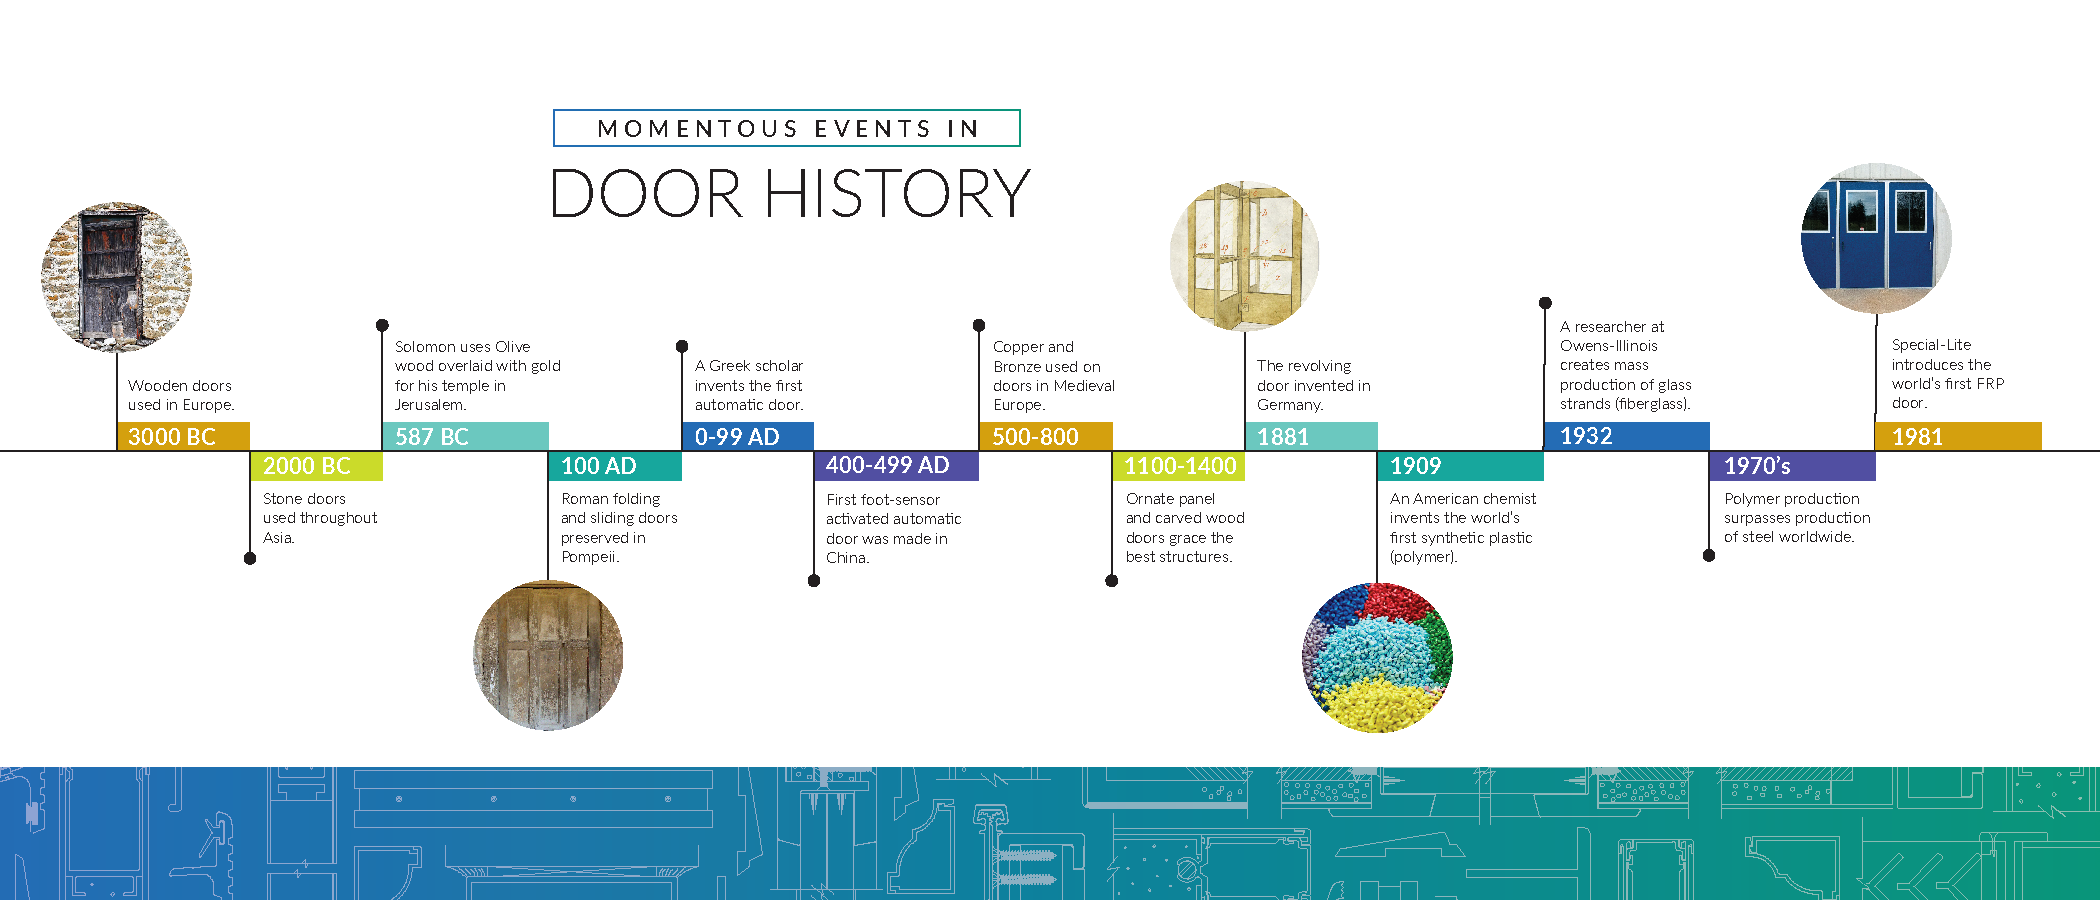 The Totally True History of Doors (Infographic)